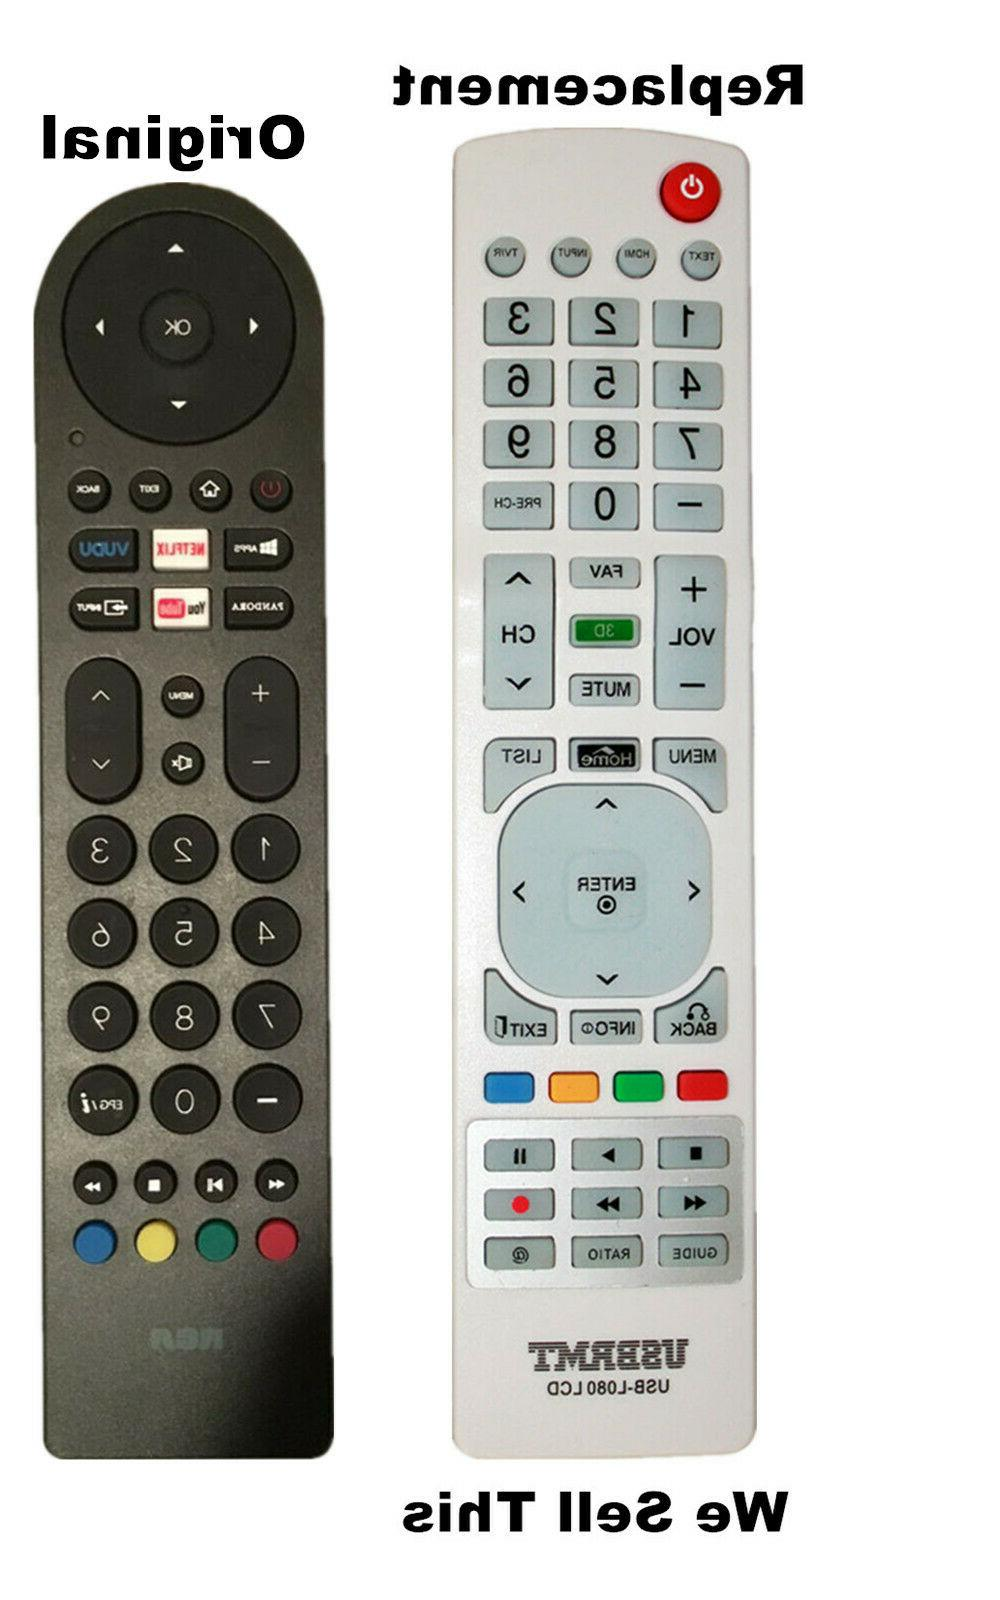 New USB Universal Remote for RCA Smart TV Black Remote - Alr